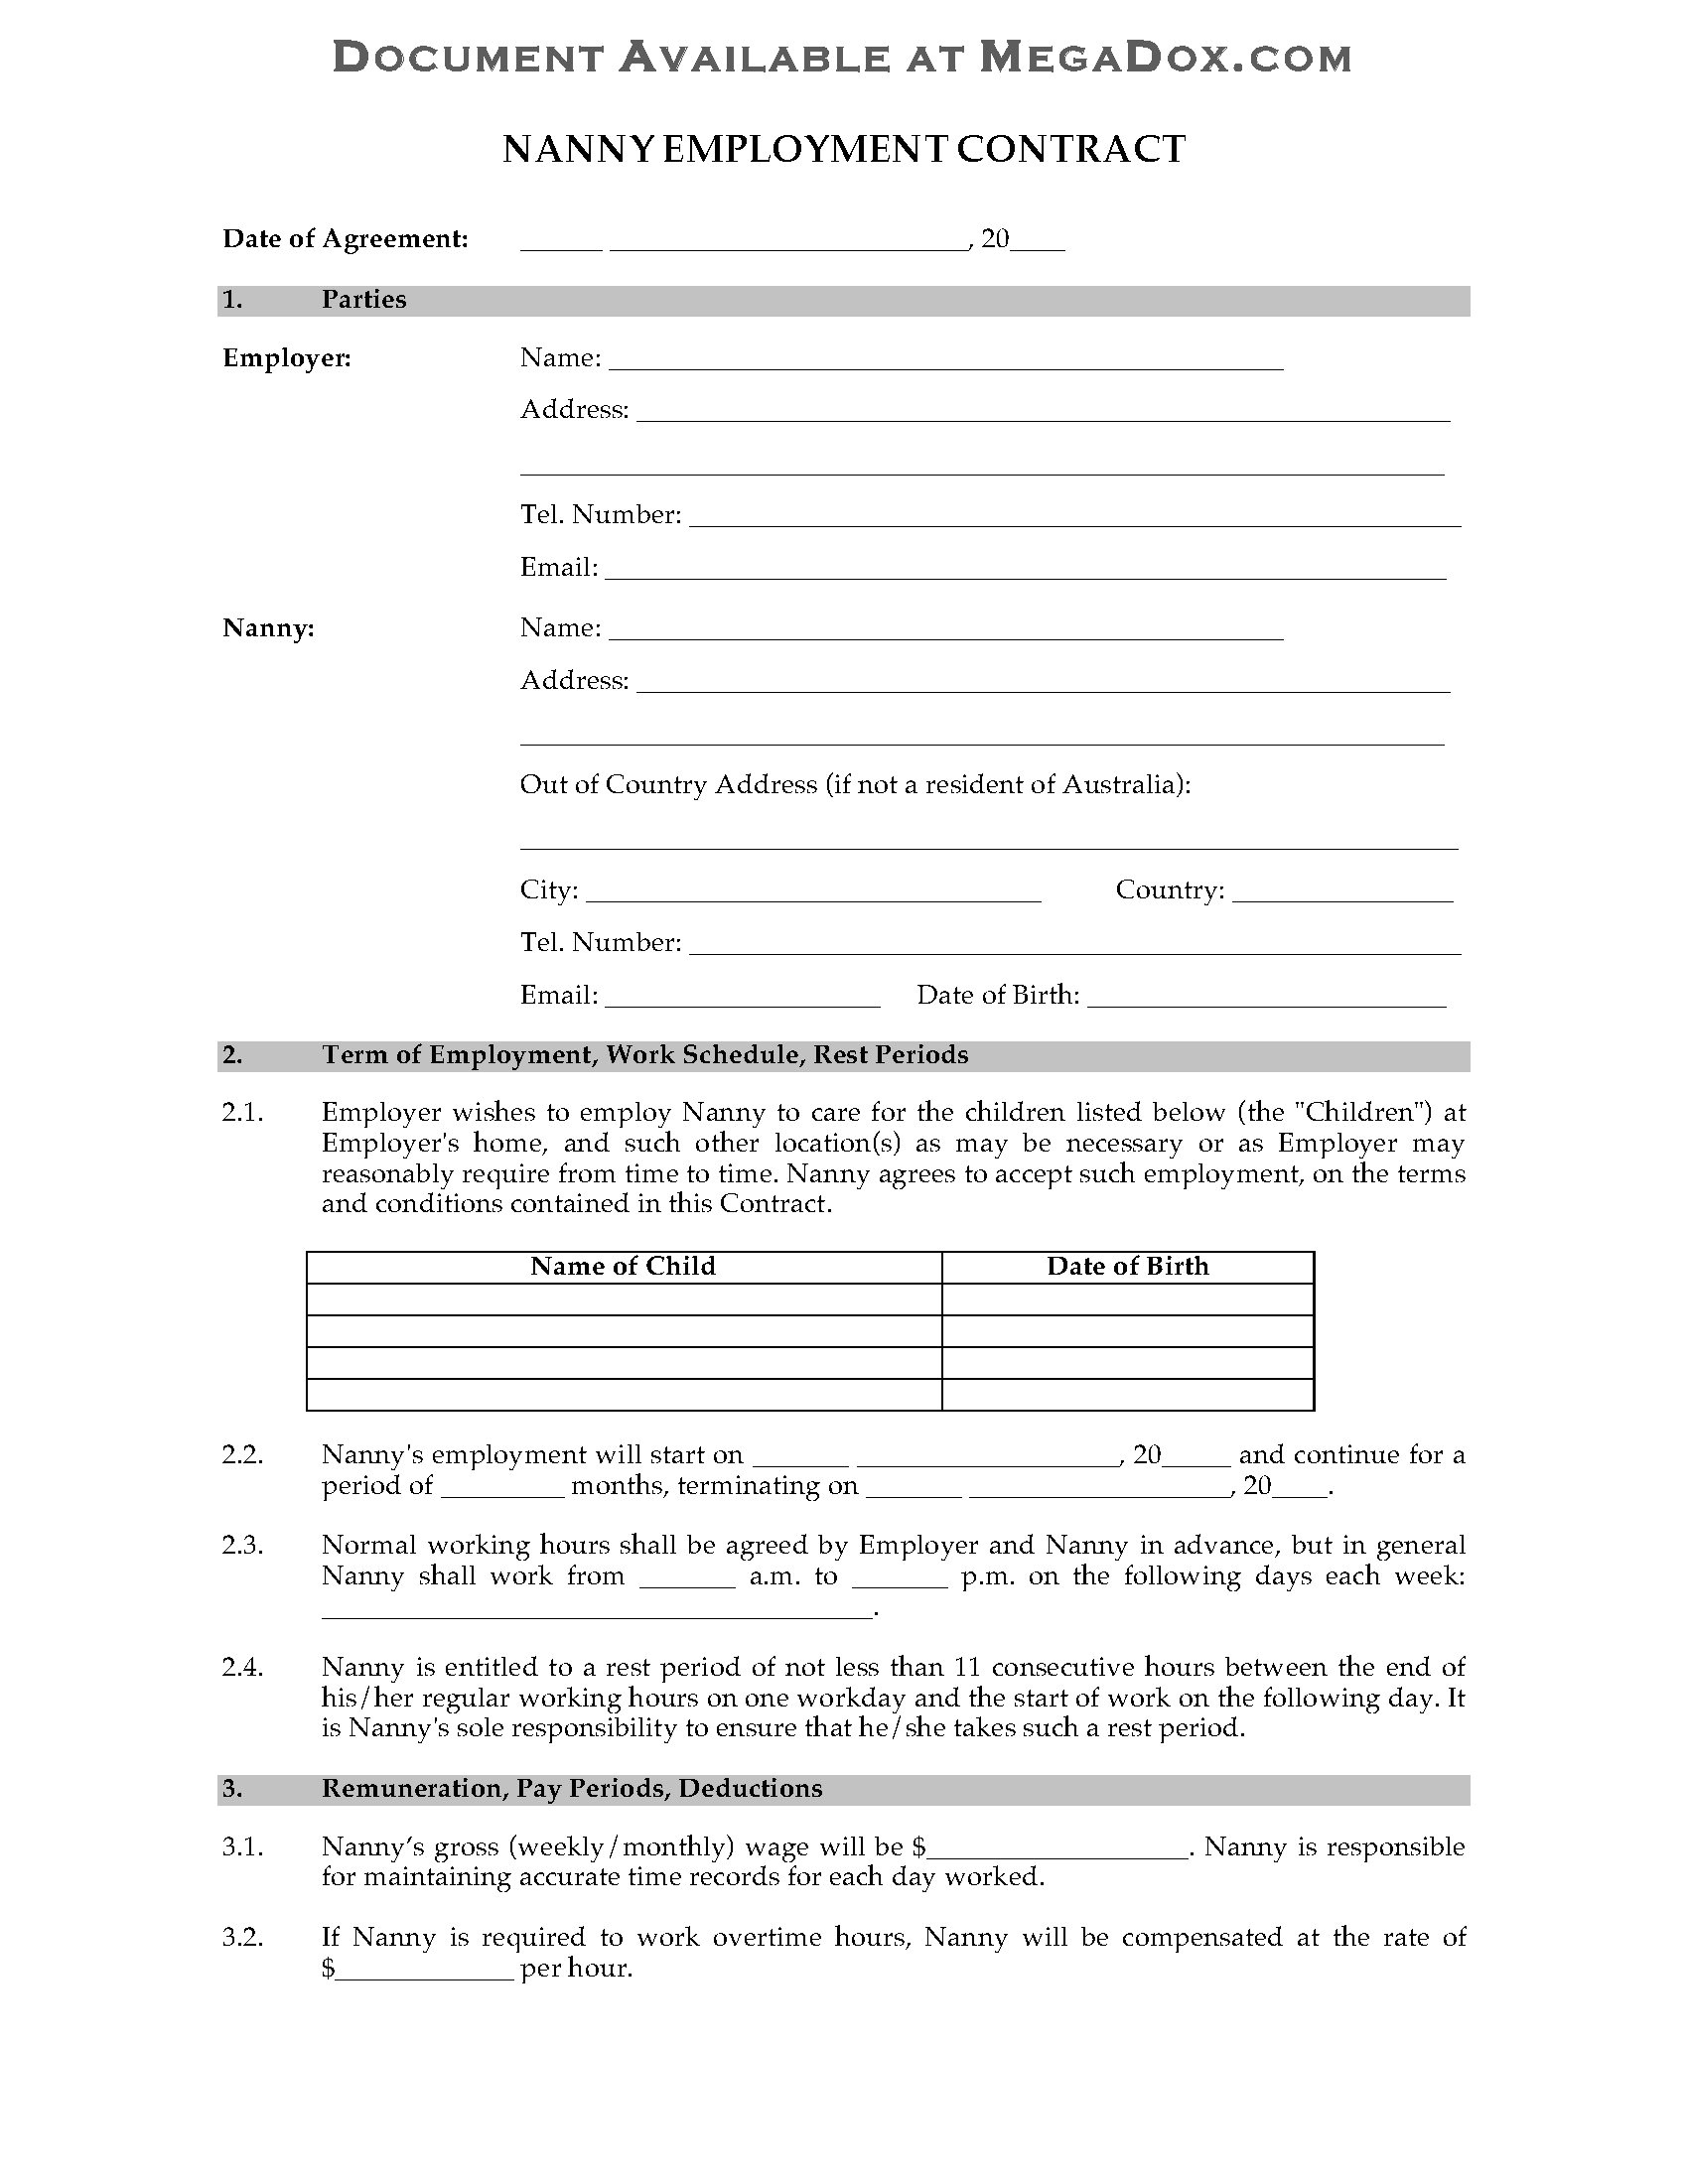 Employment Contract Template Australia Australia Nanny Employment Contract Legal forms and